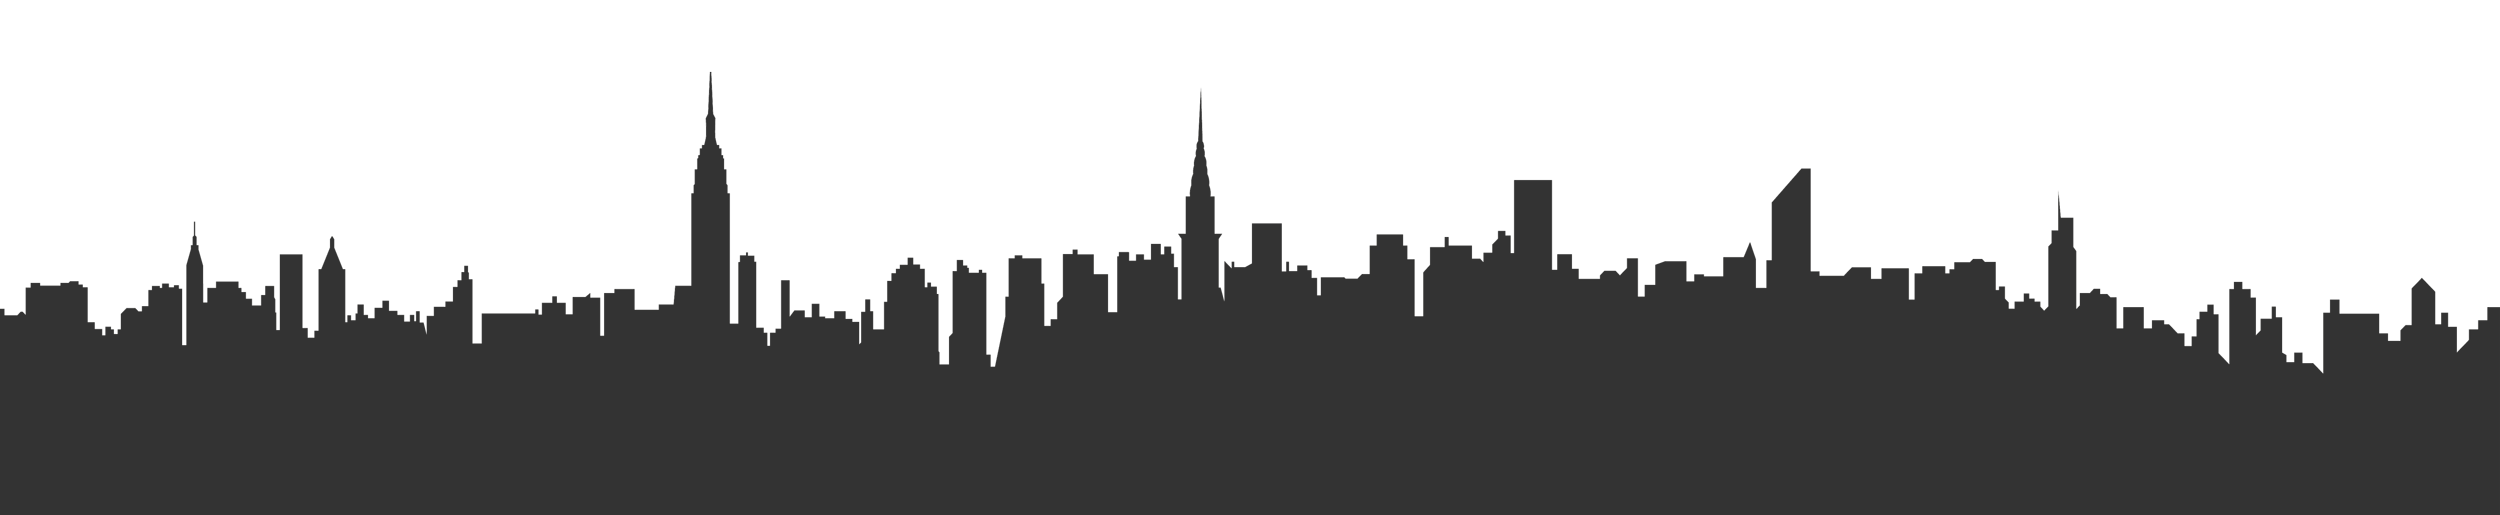 New york city skyline silhouette png. Direct buyer assist madison